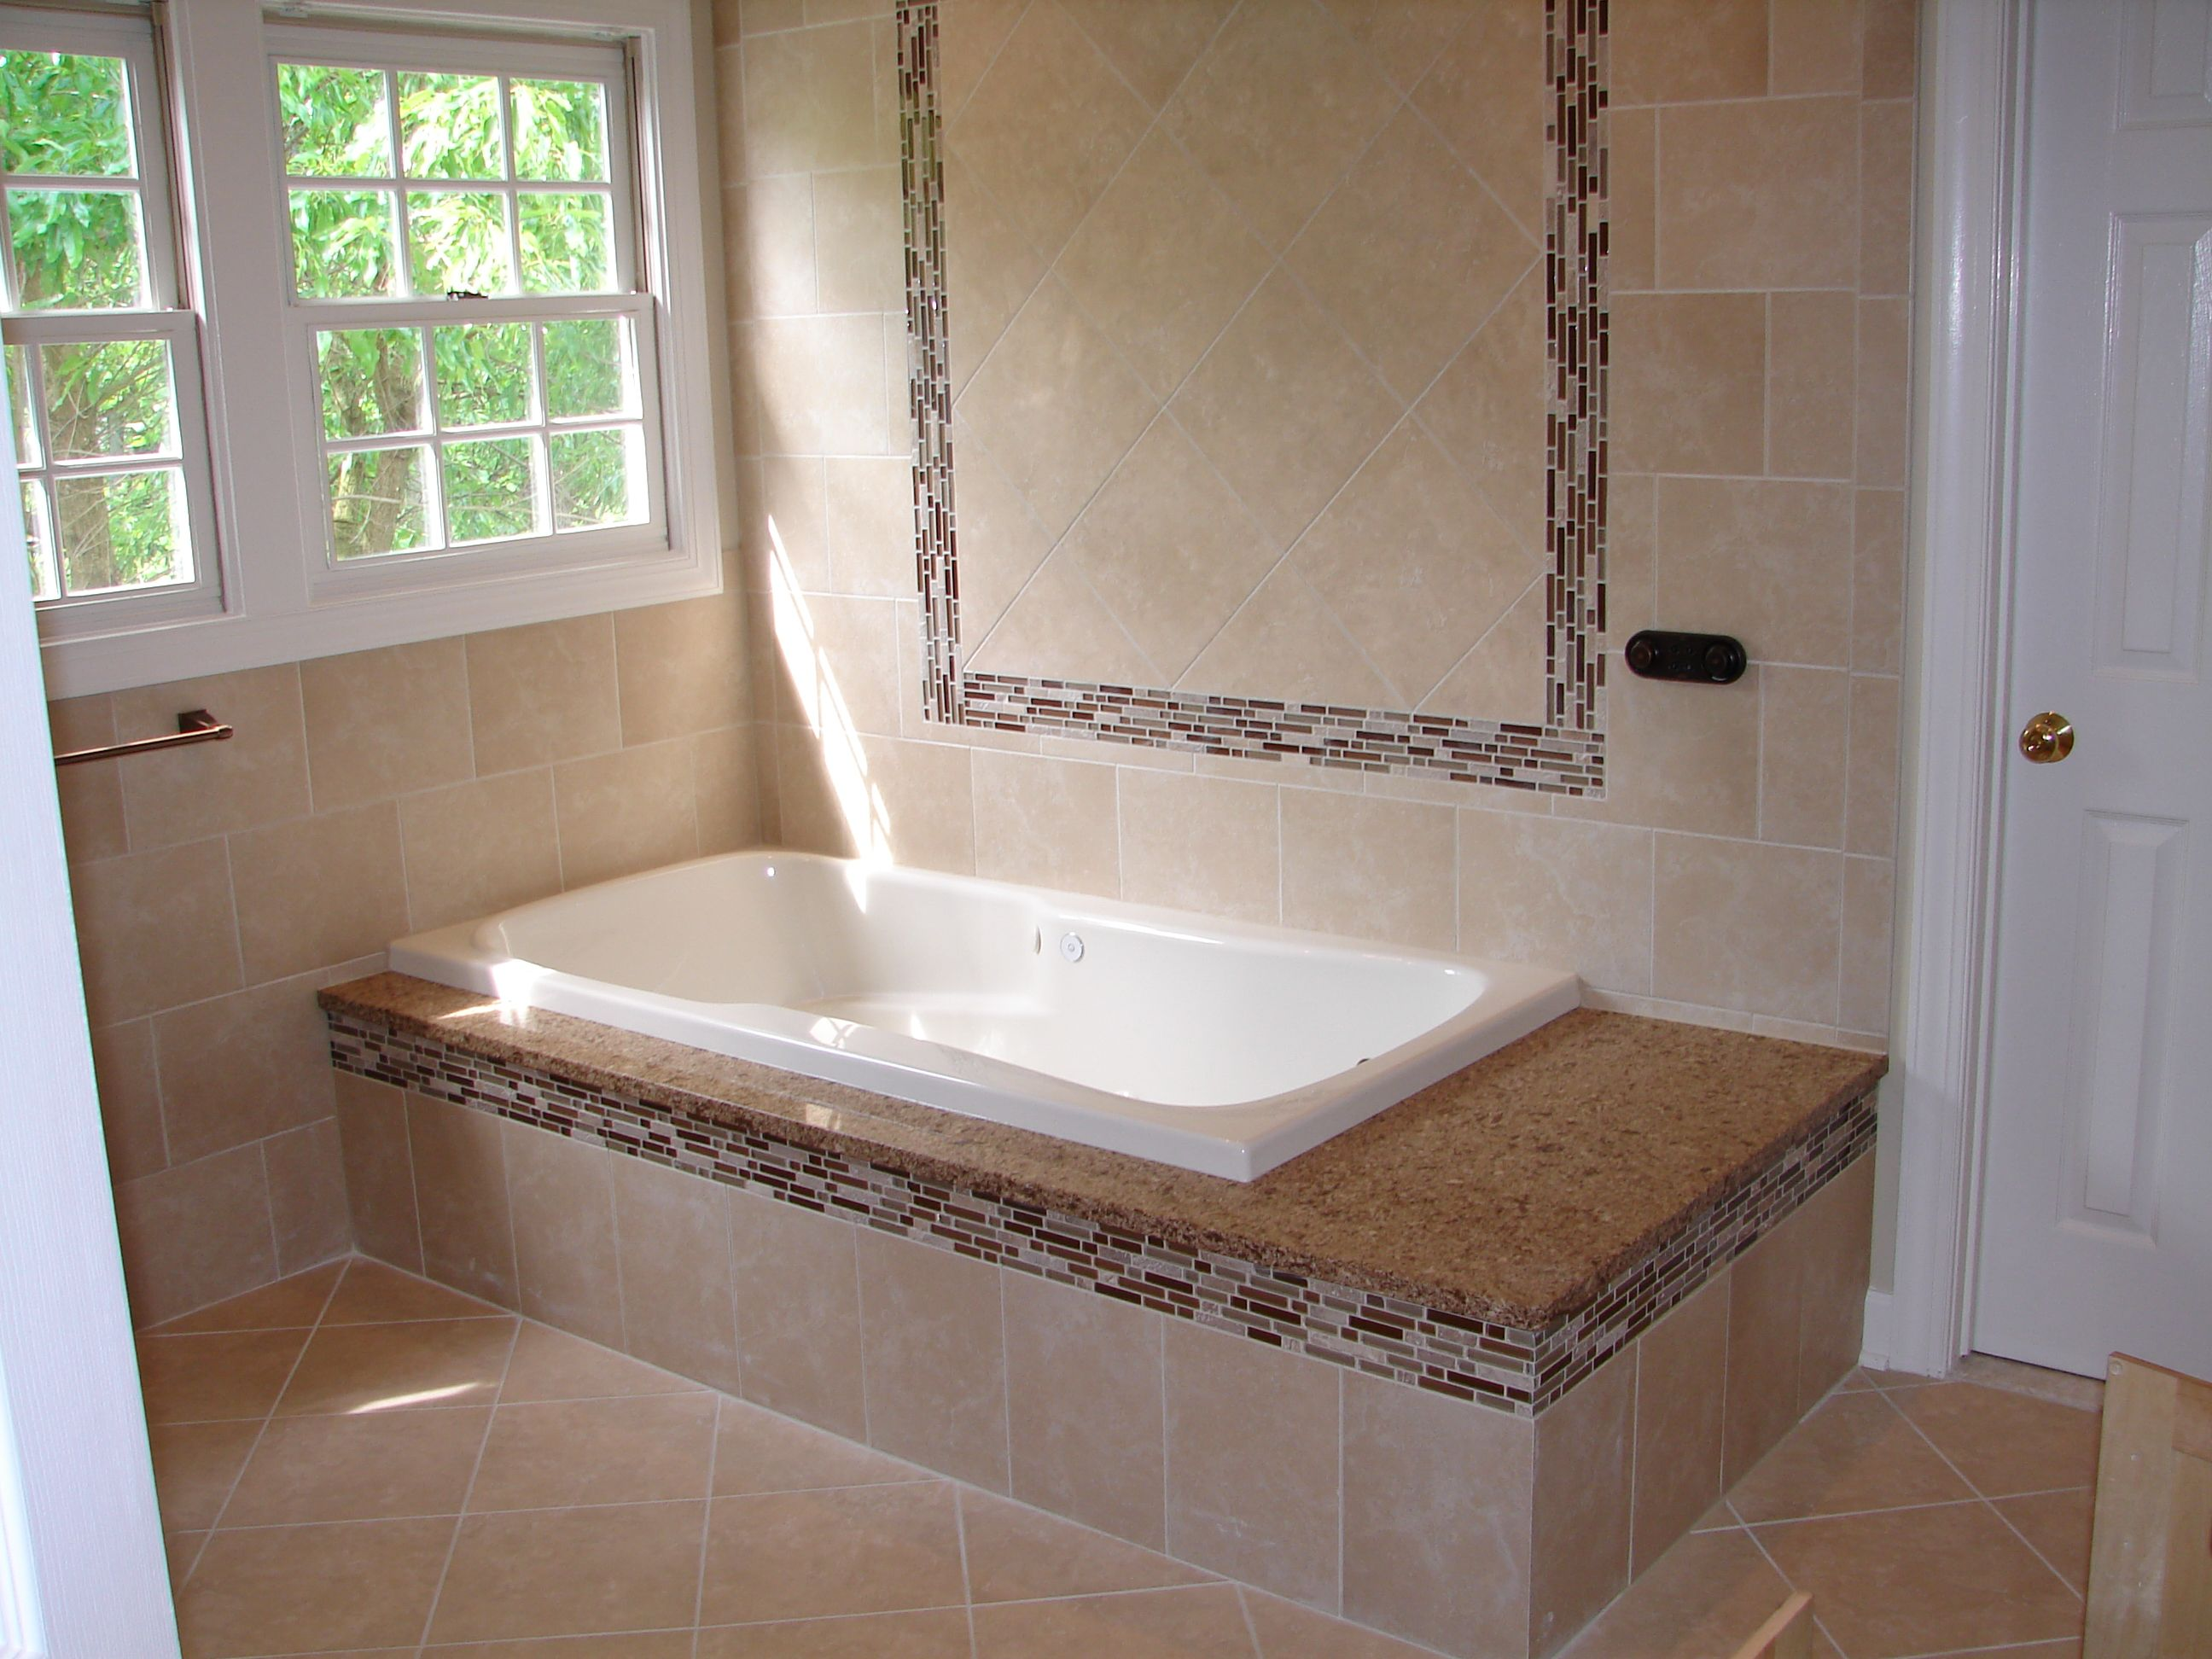 Bathroom Remodeling Potomac Md. Renovations Residential Designbuild Remodeling Commercial Interior Renovation Service Talon Construction Frederick County Maryland